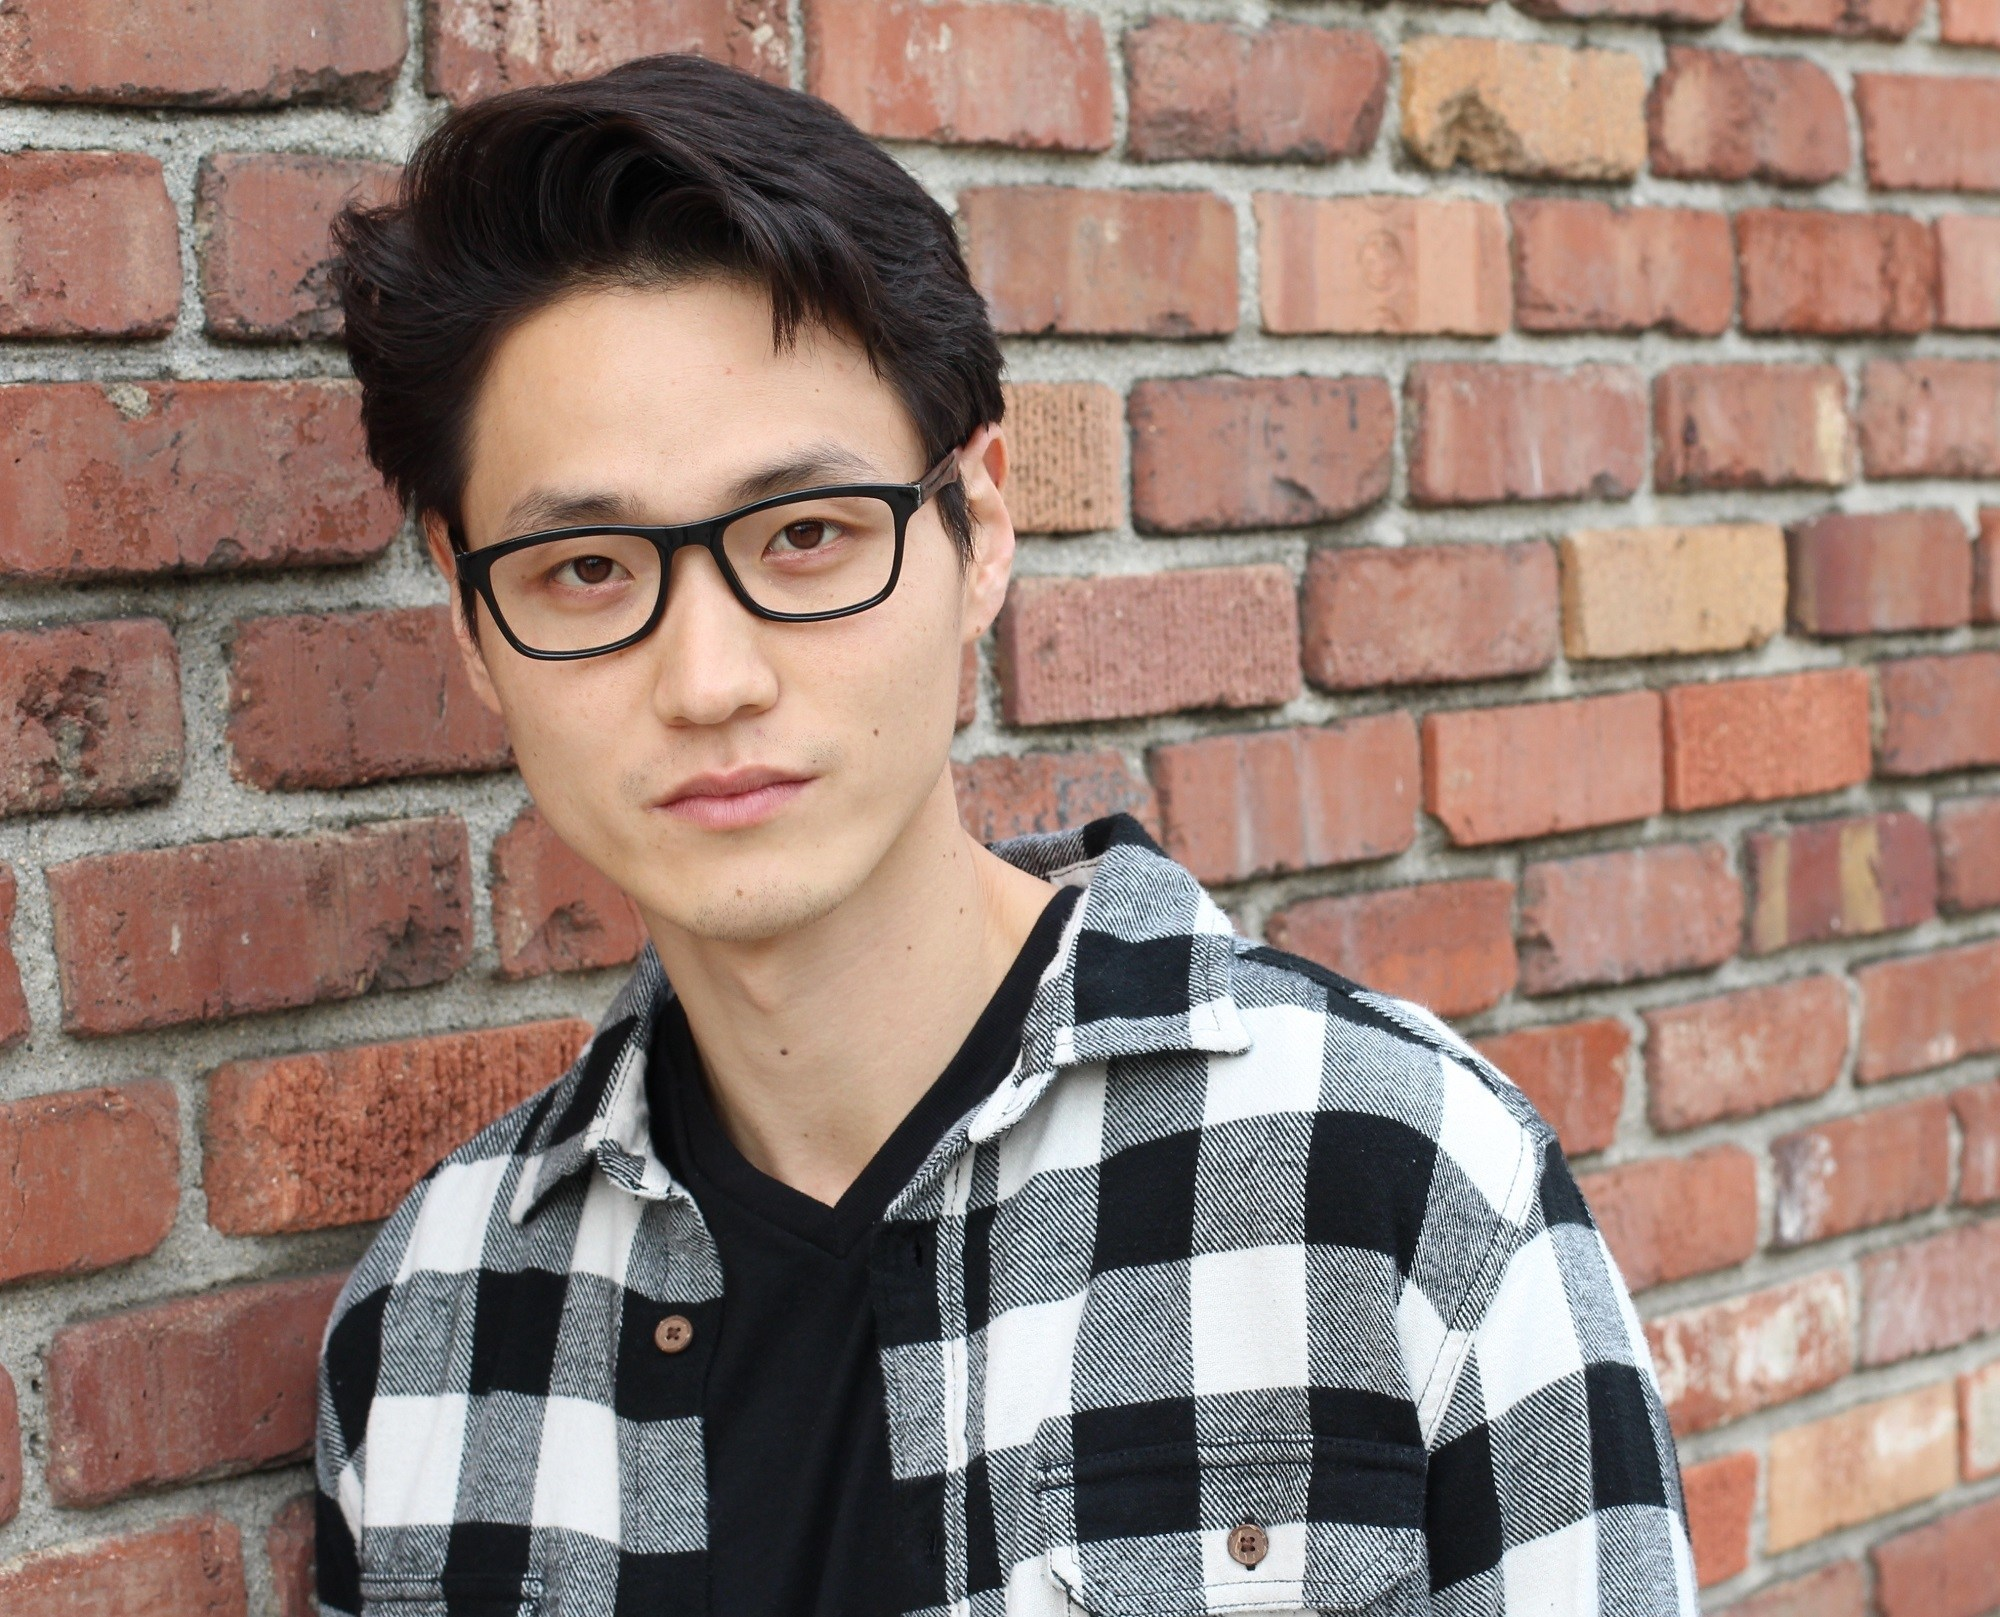 Asian hairstyles men: Asian man with side-swept quiff